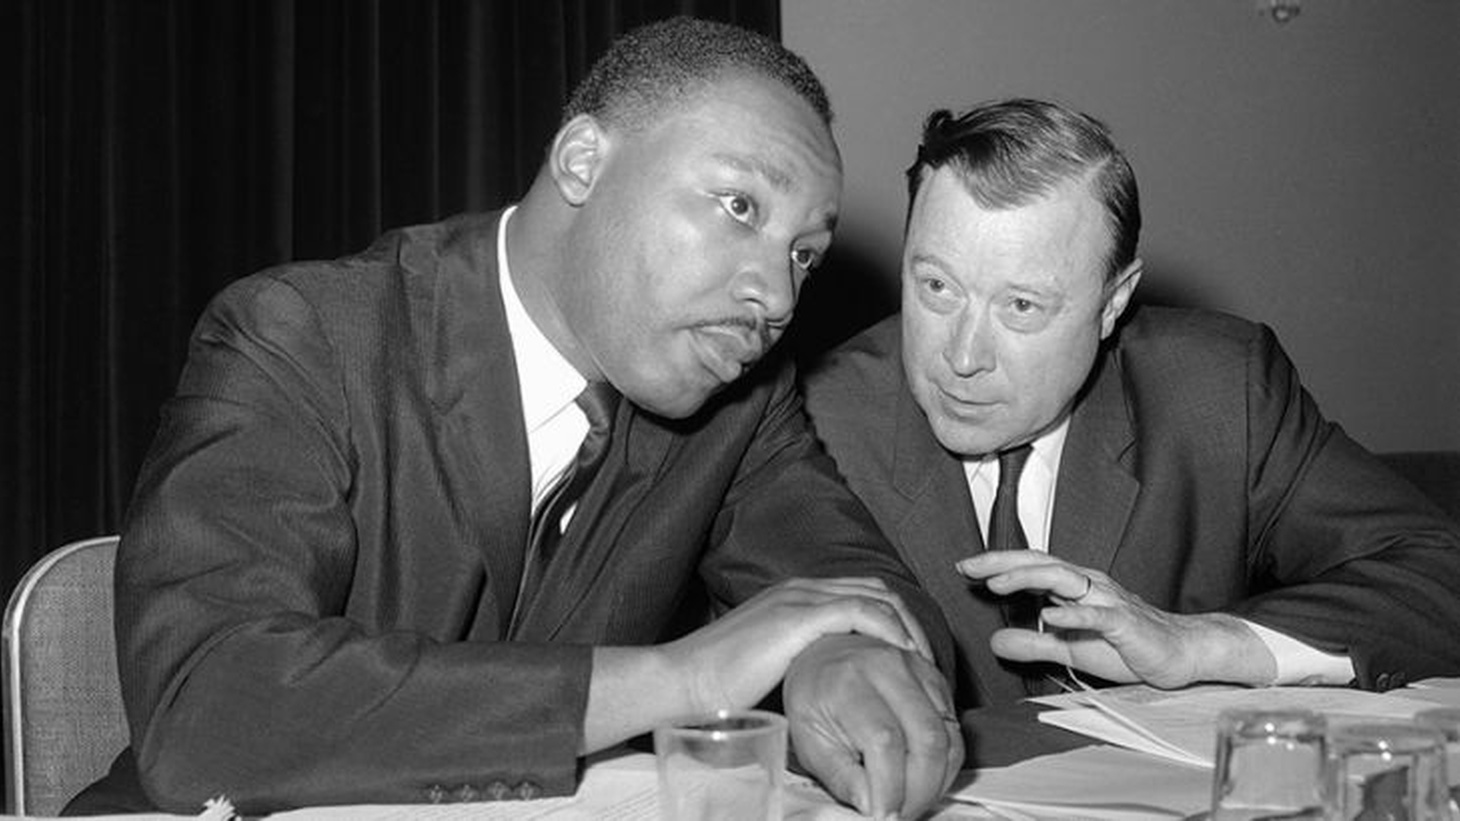 Dr. M.L. King, Jr and Walter Reuther